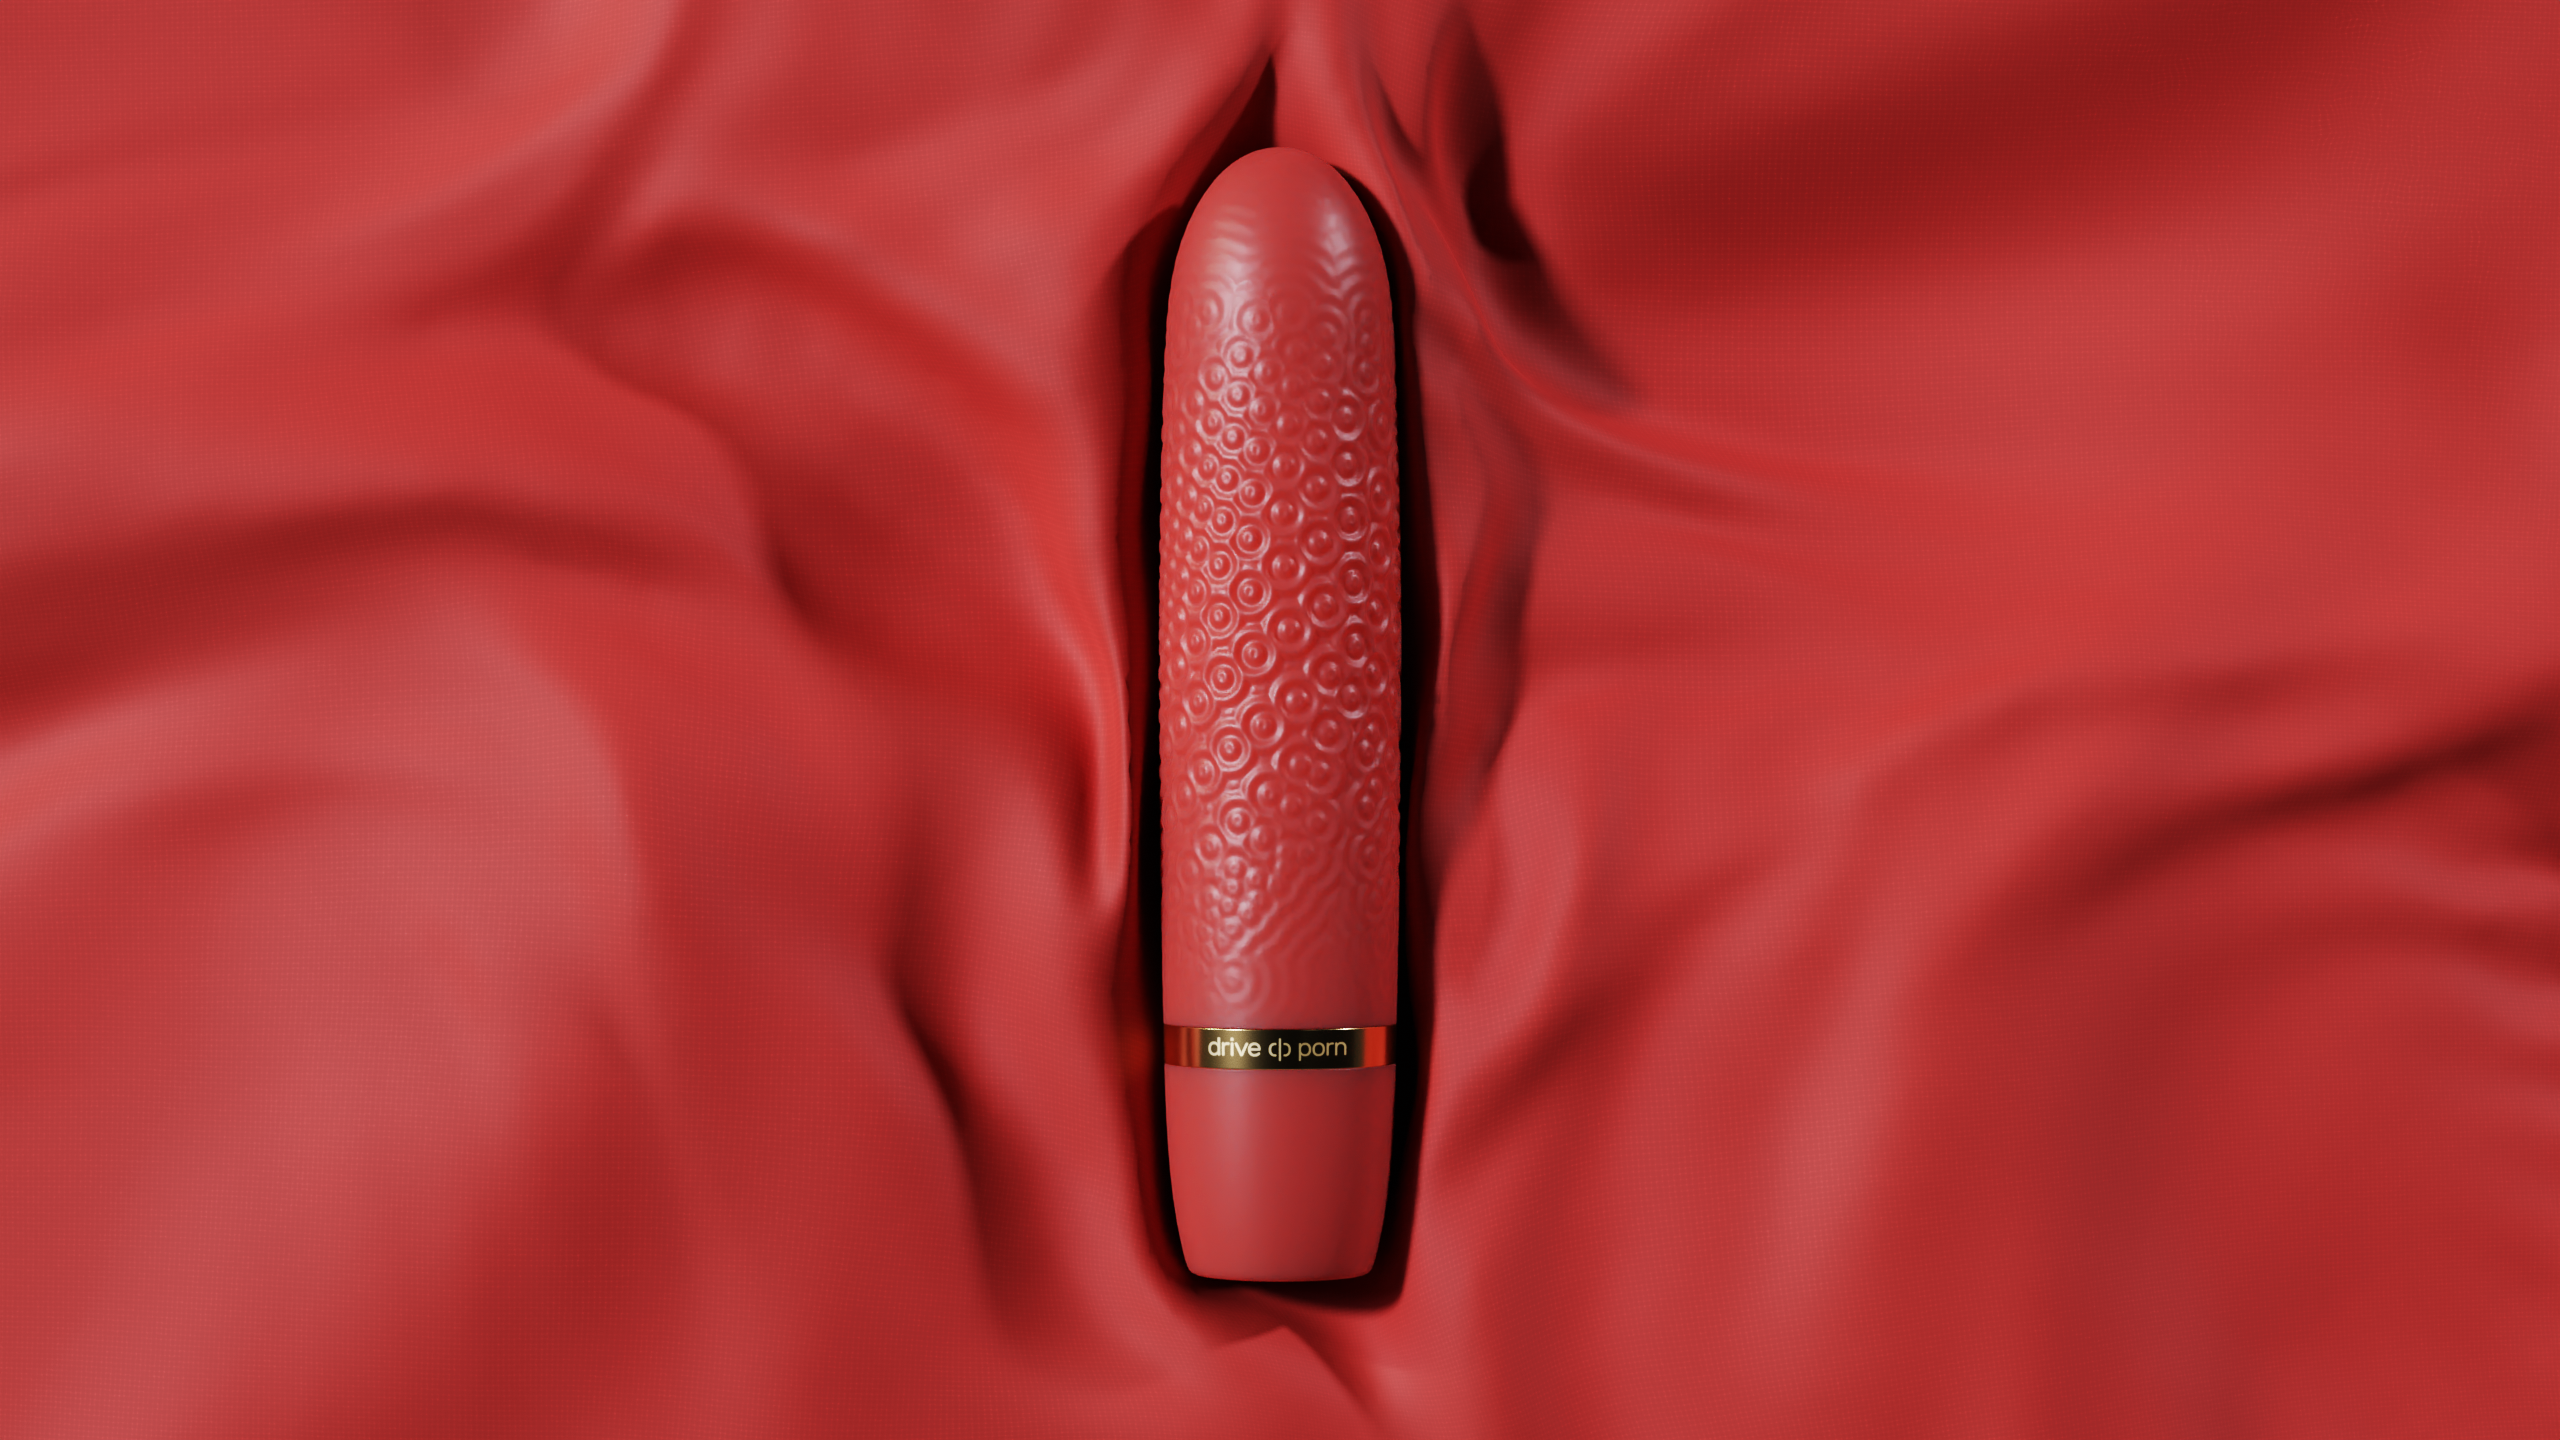 red structured adult toy with golden text lying on red fabric